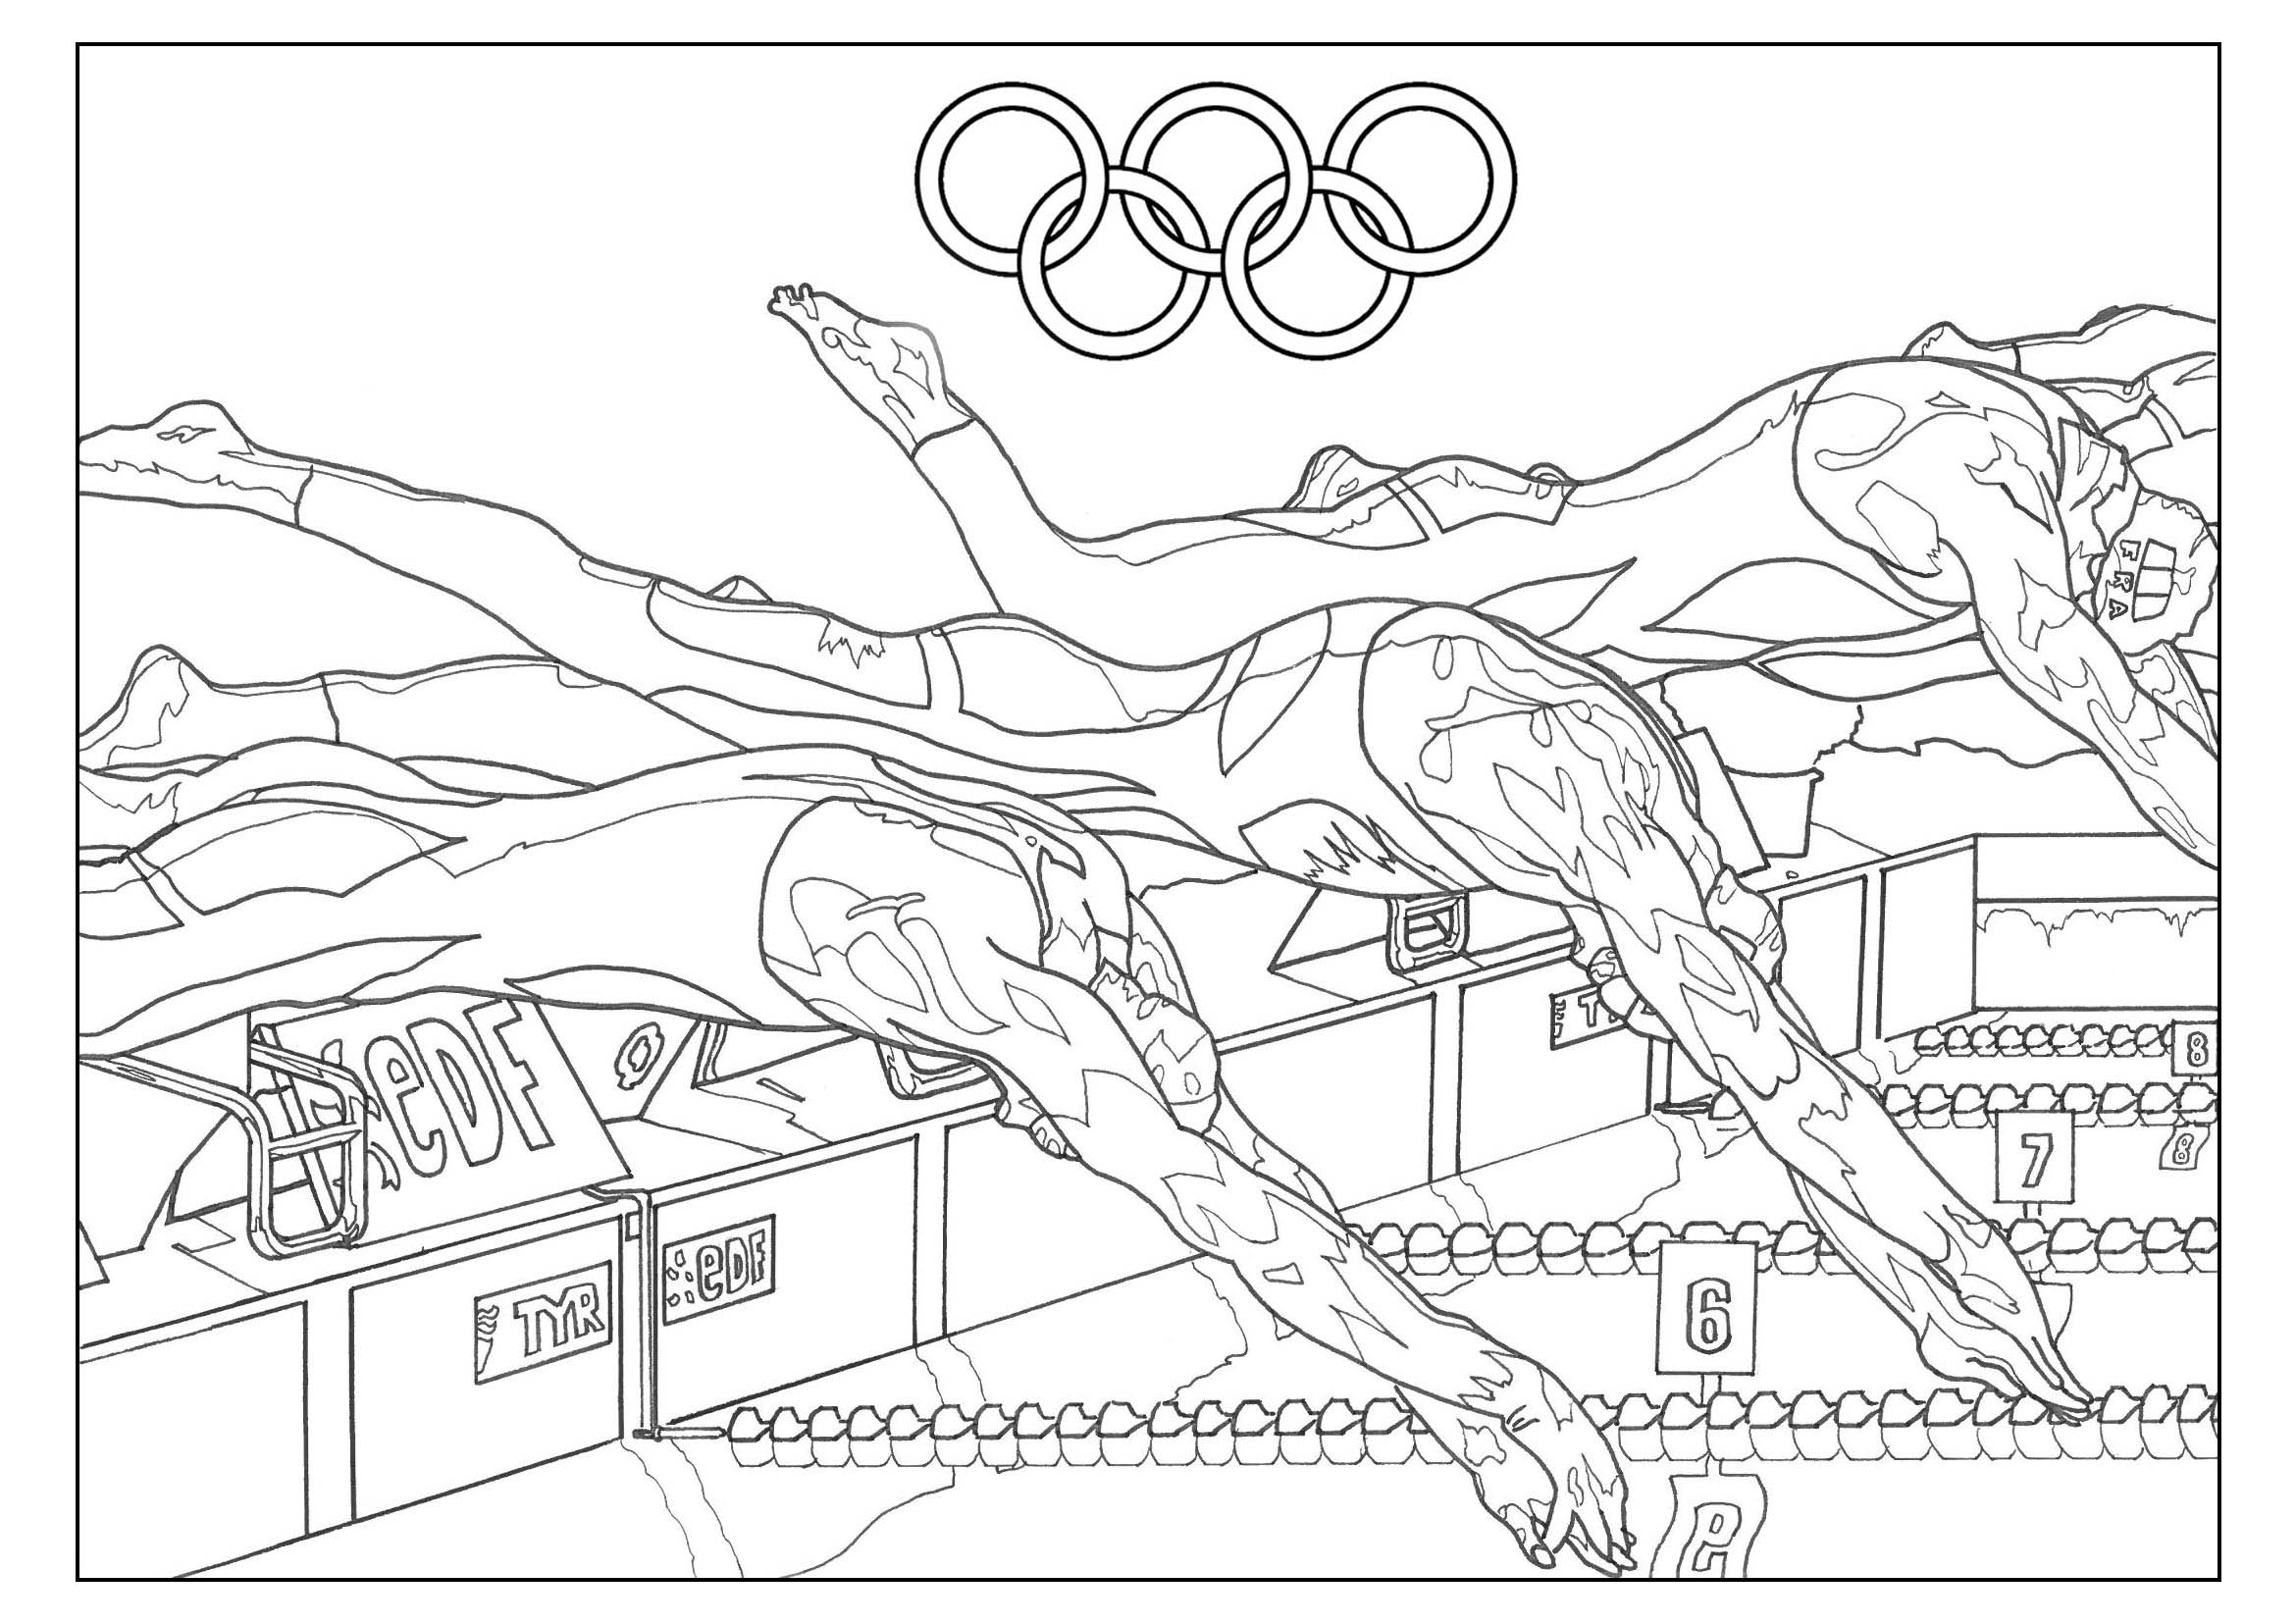 Olympic Drawing At Getdrawings